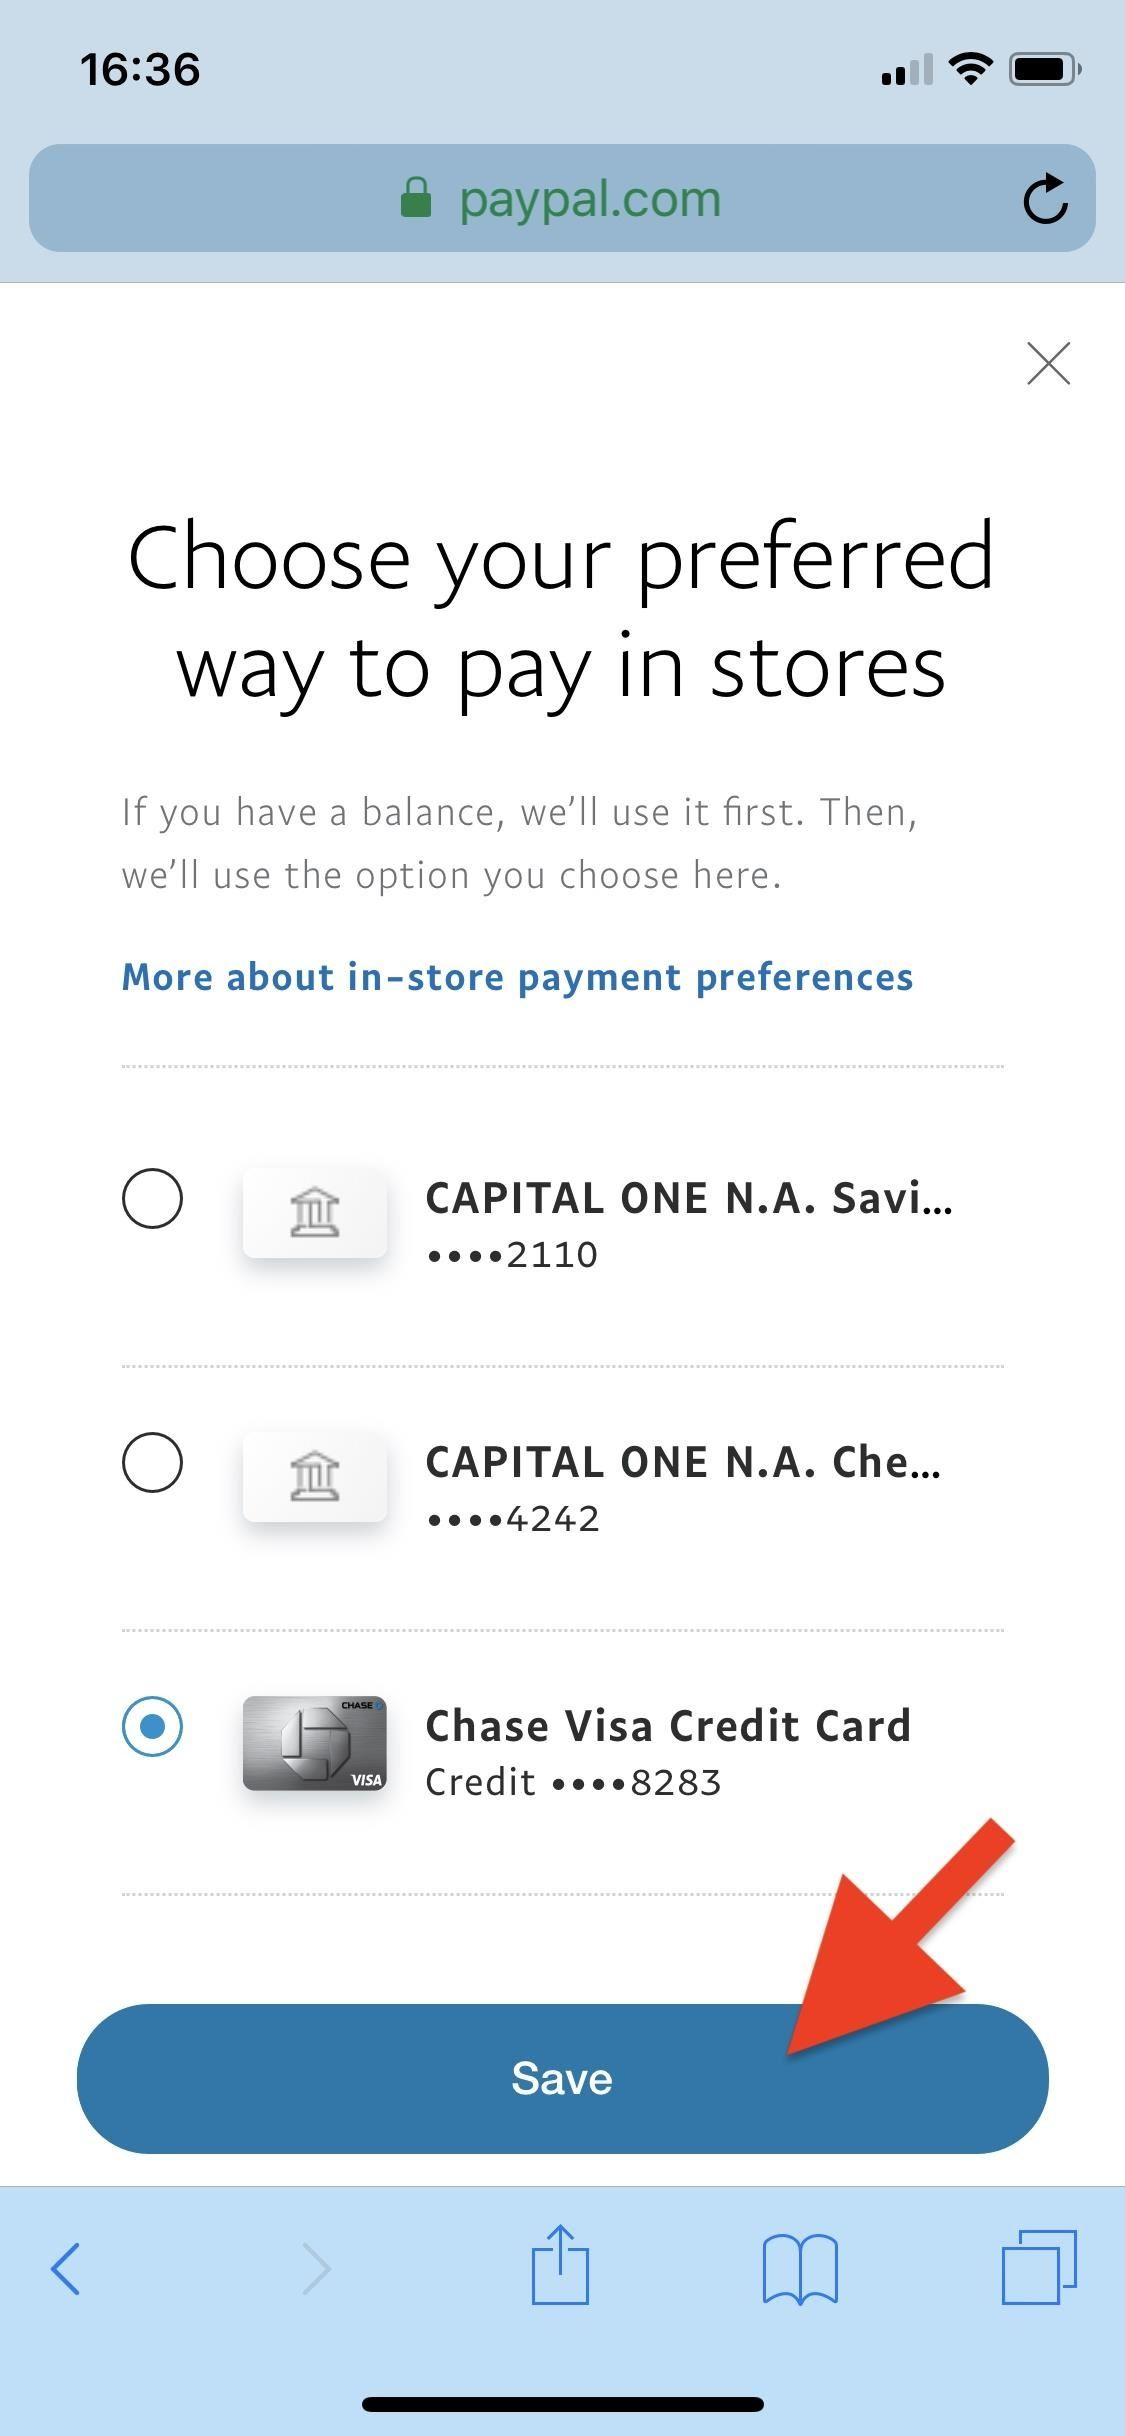 How to Change Online, In-Store, Google Pay, Samsung Pay & PayPal Cash Card Payment Preferences for PayPal